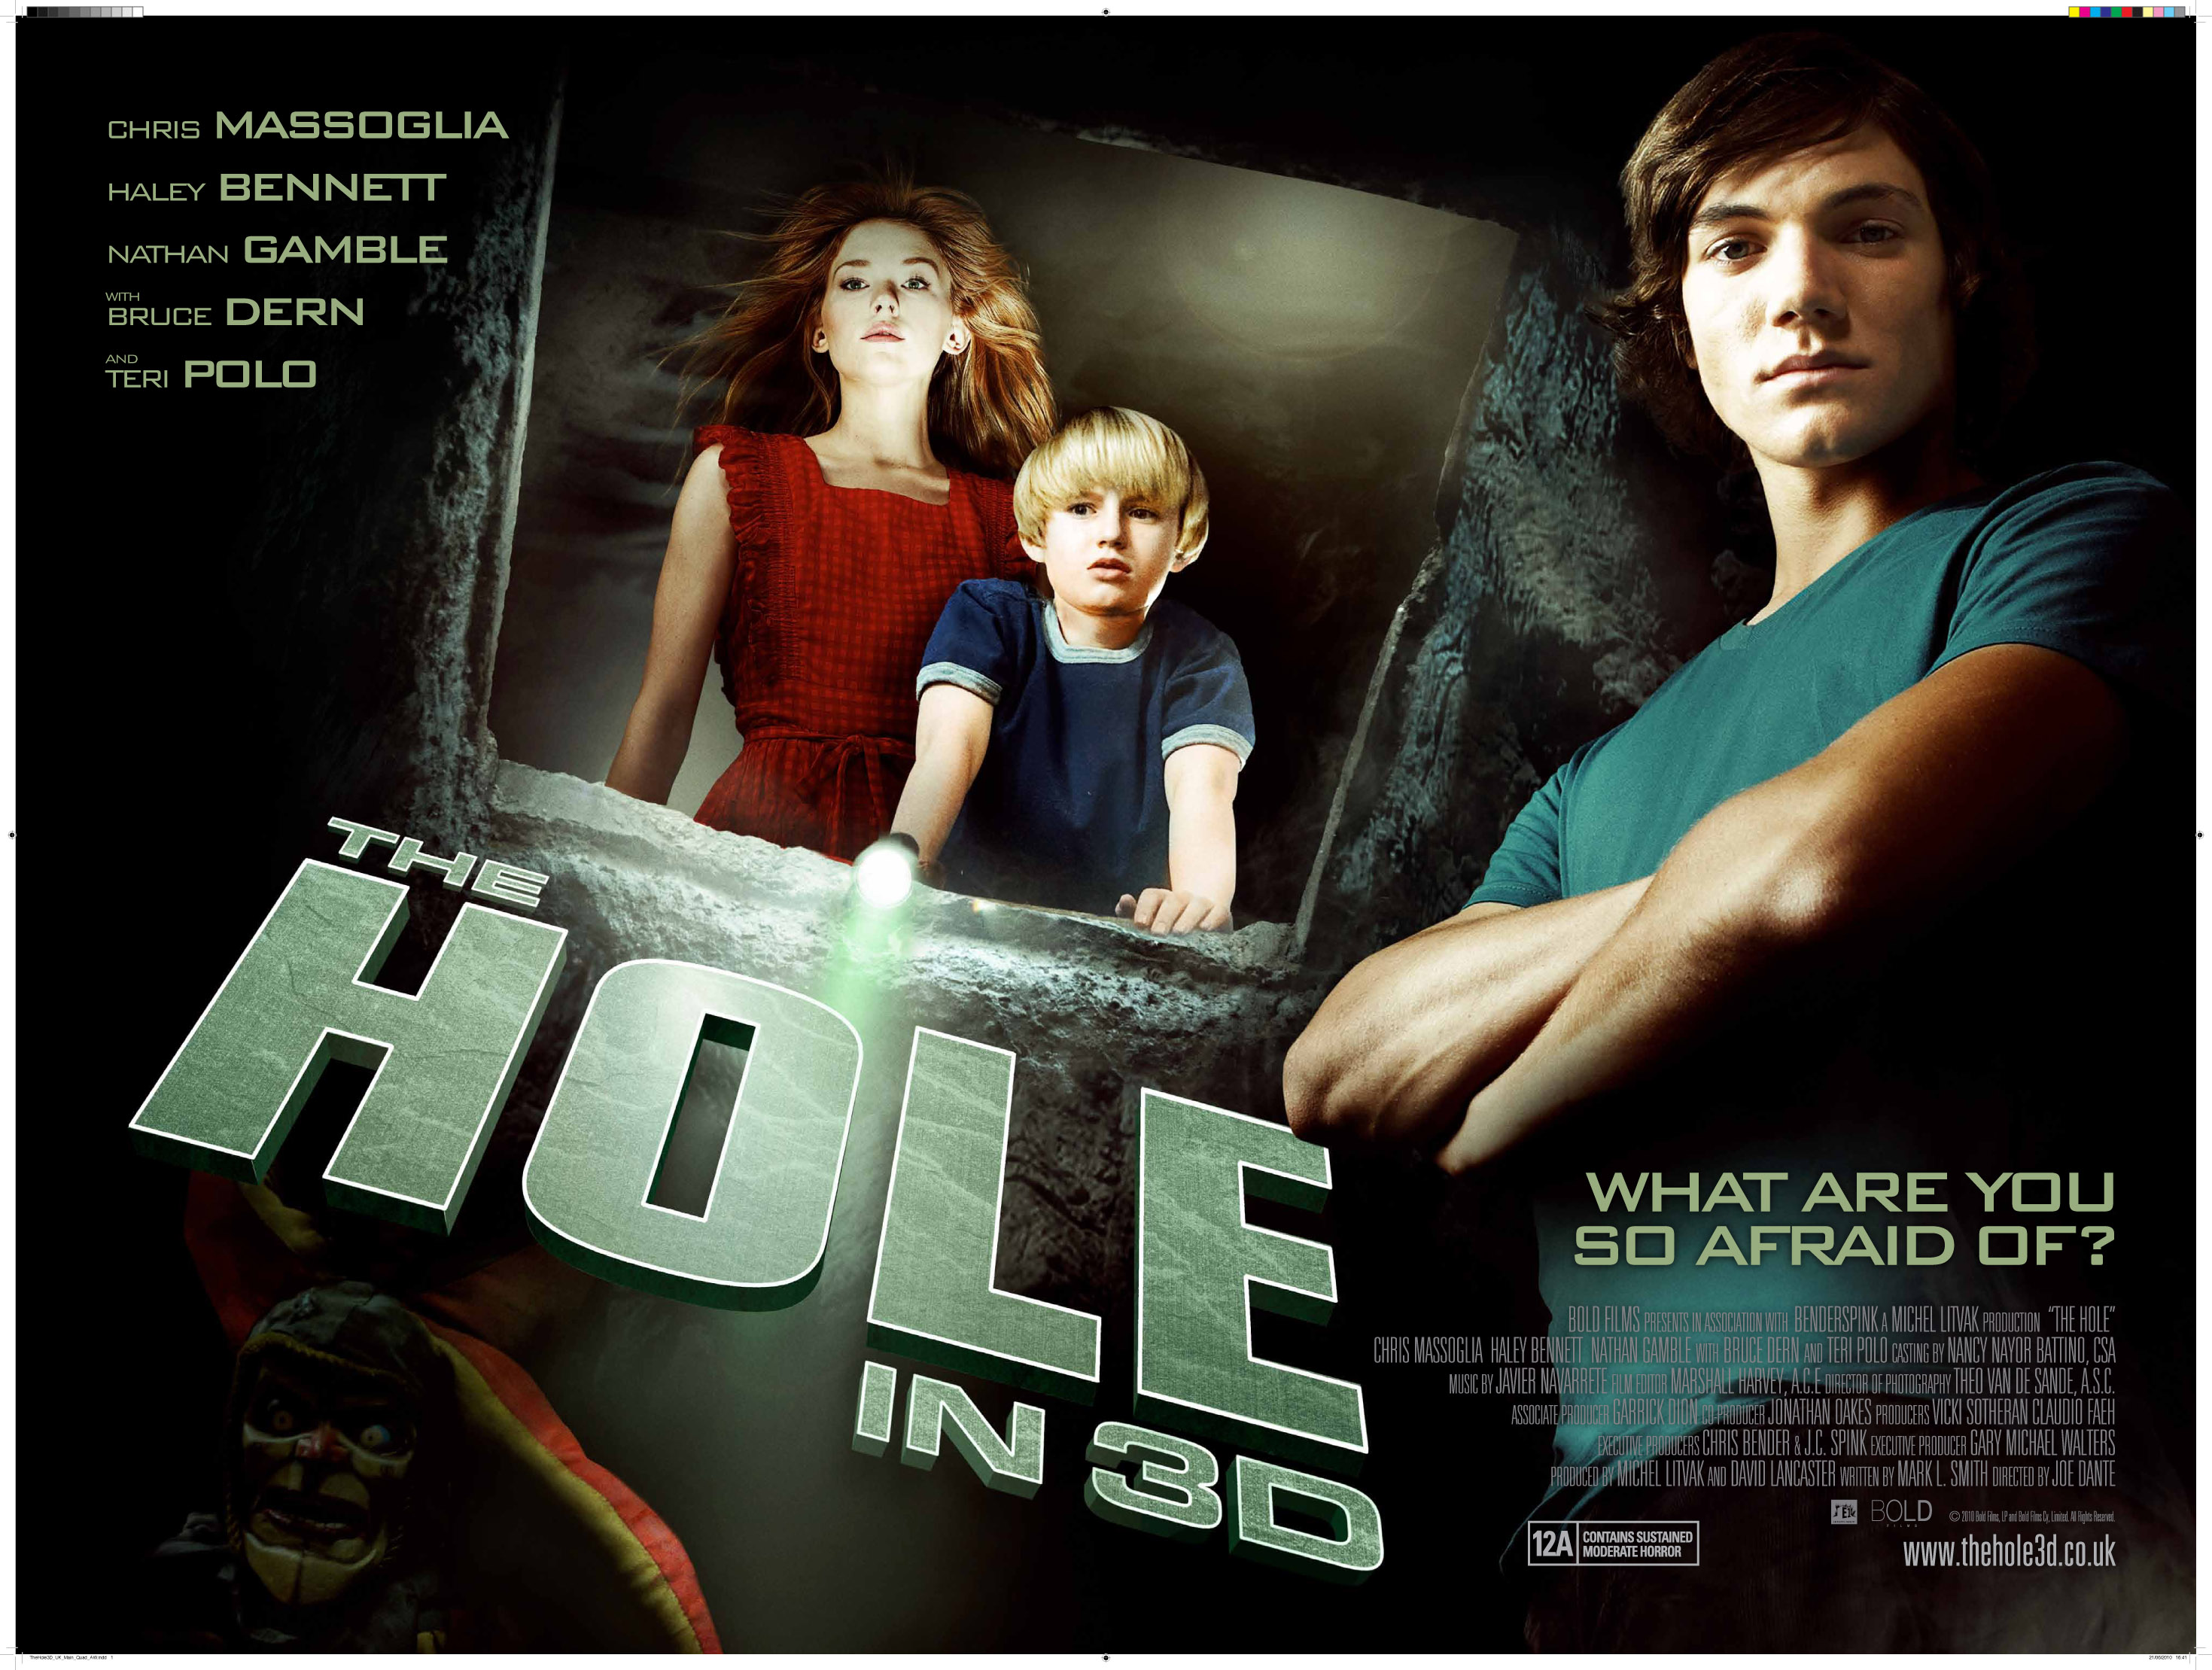 The-Hole-2009-image-movie-1 | HNN | Horrornews.net